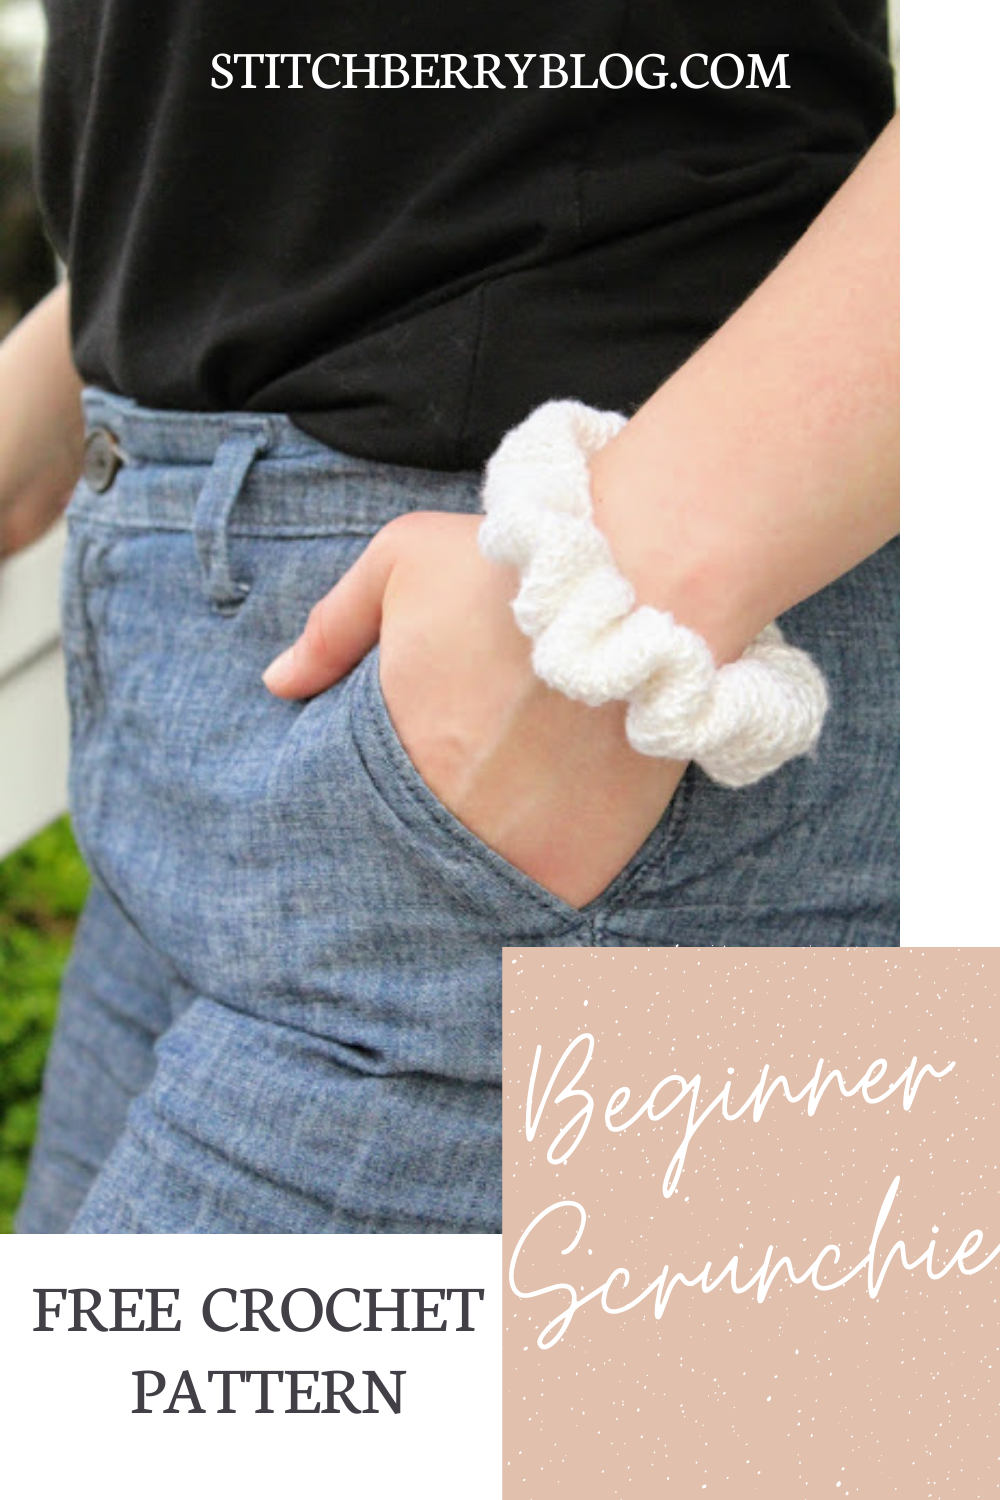 Beginner Scrunchie – Free Crochet Pattern